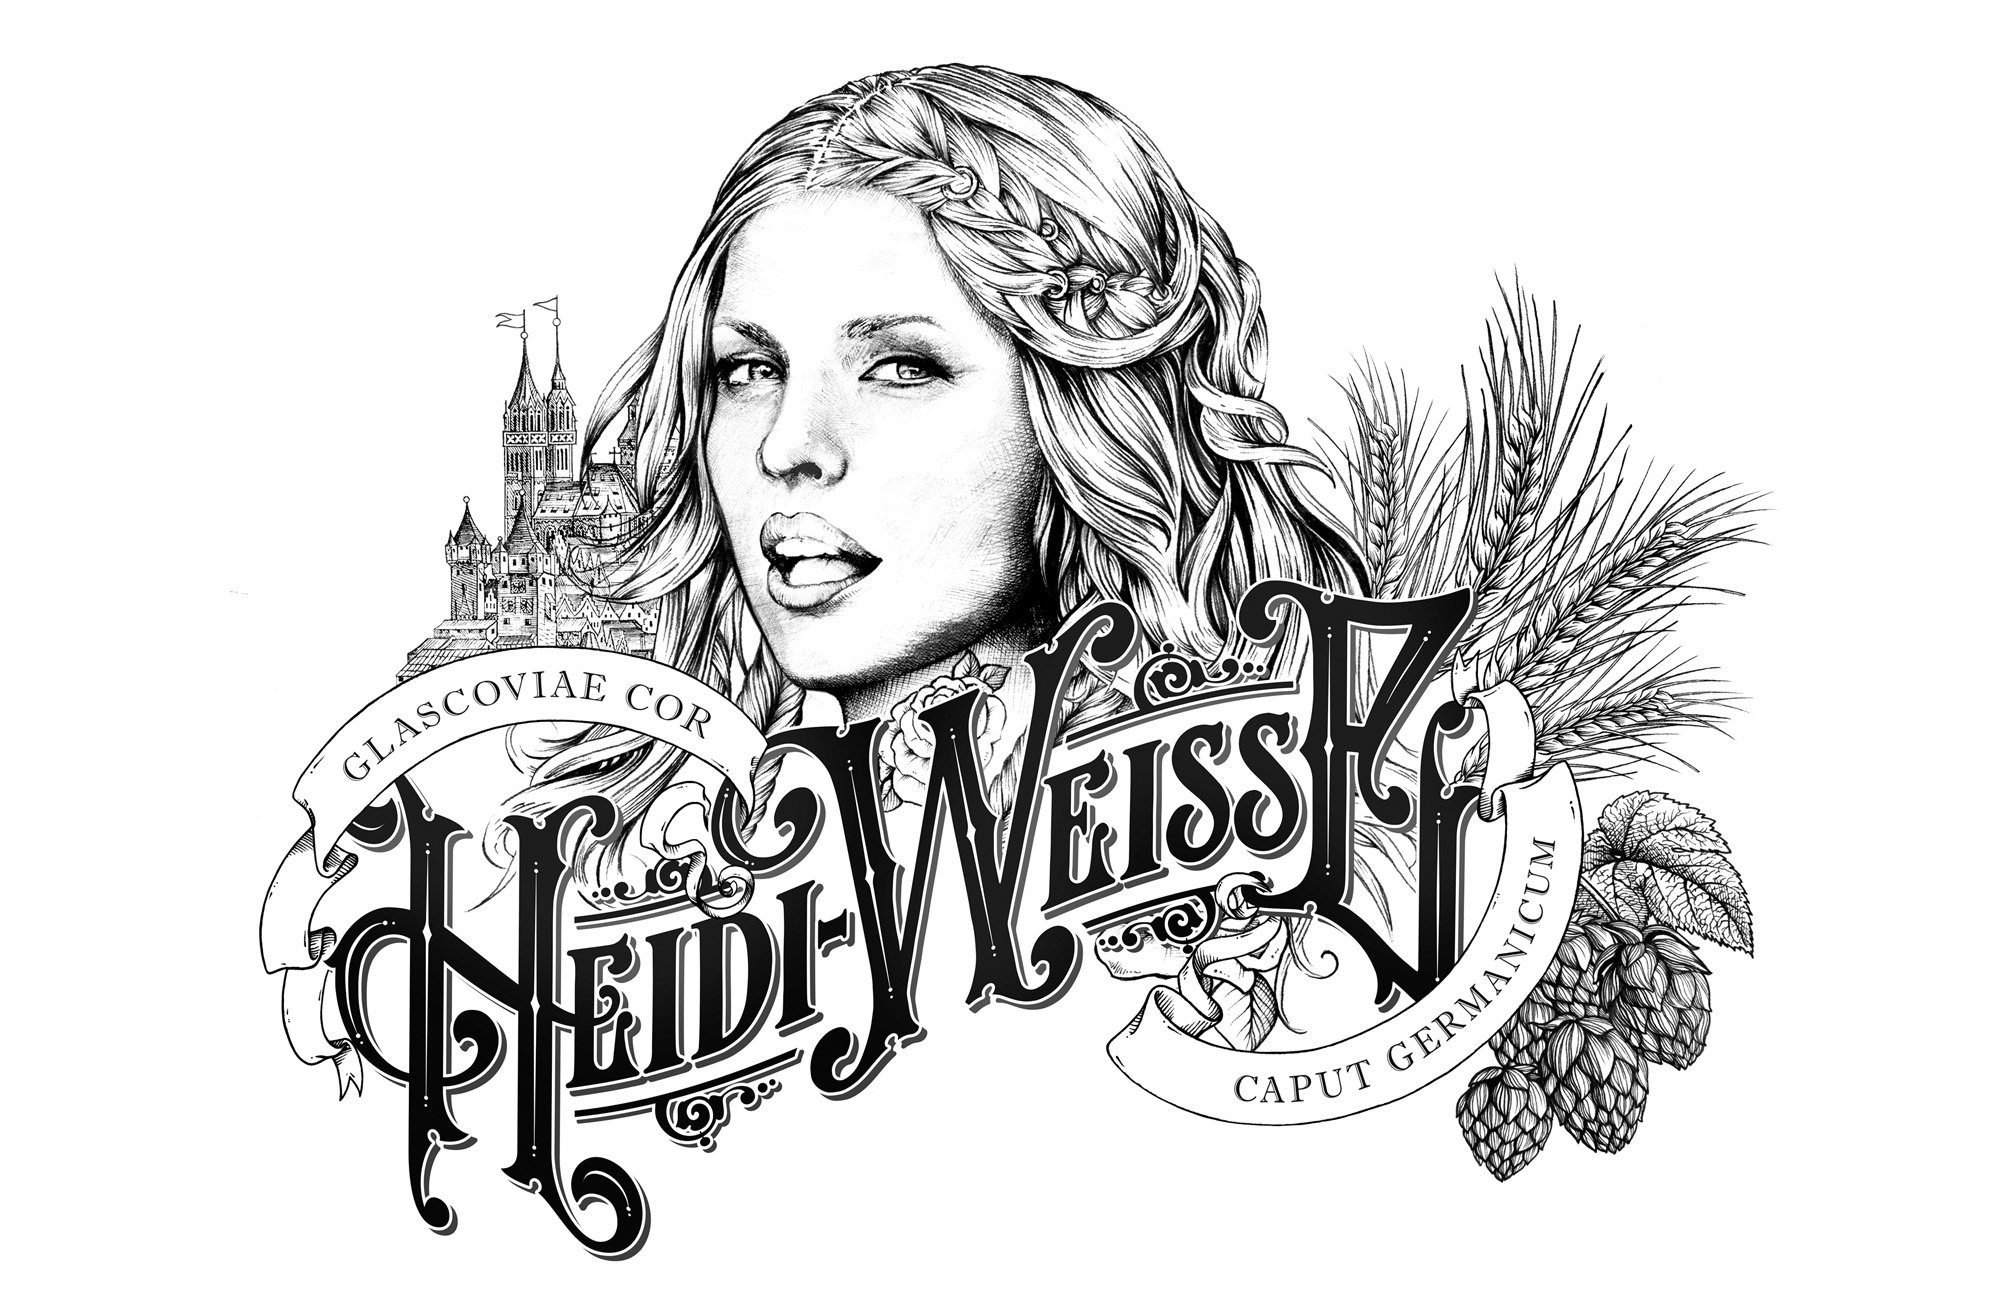 Greg Coulton's illustrated identity for West Beer's Heidi